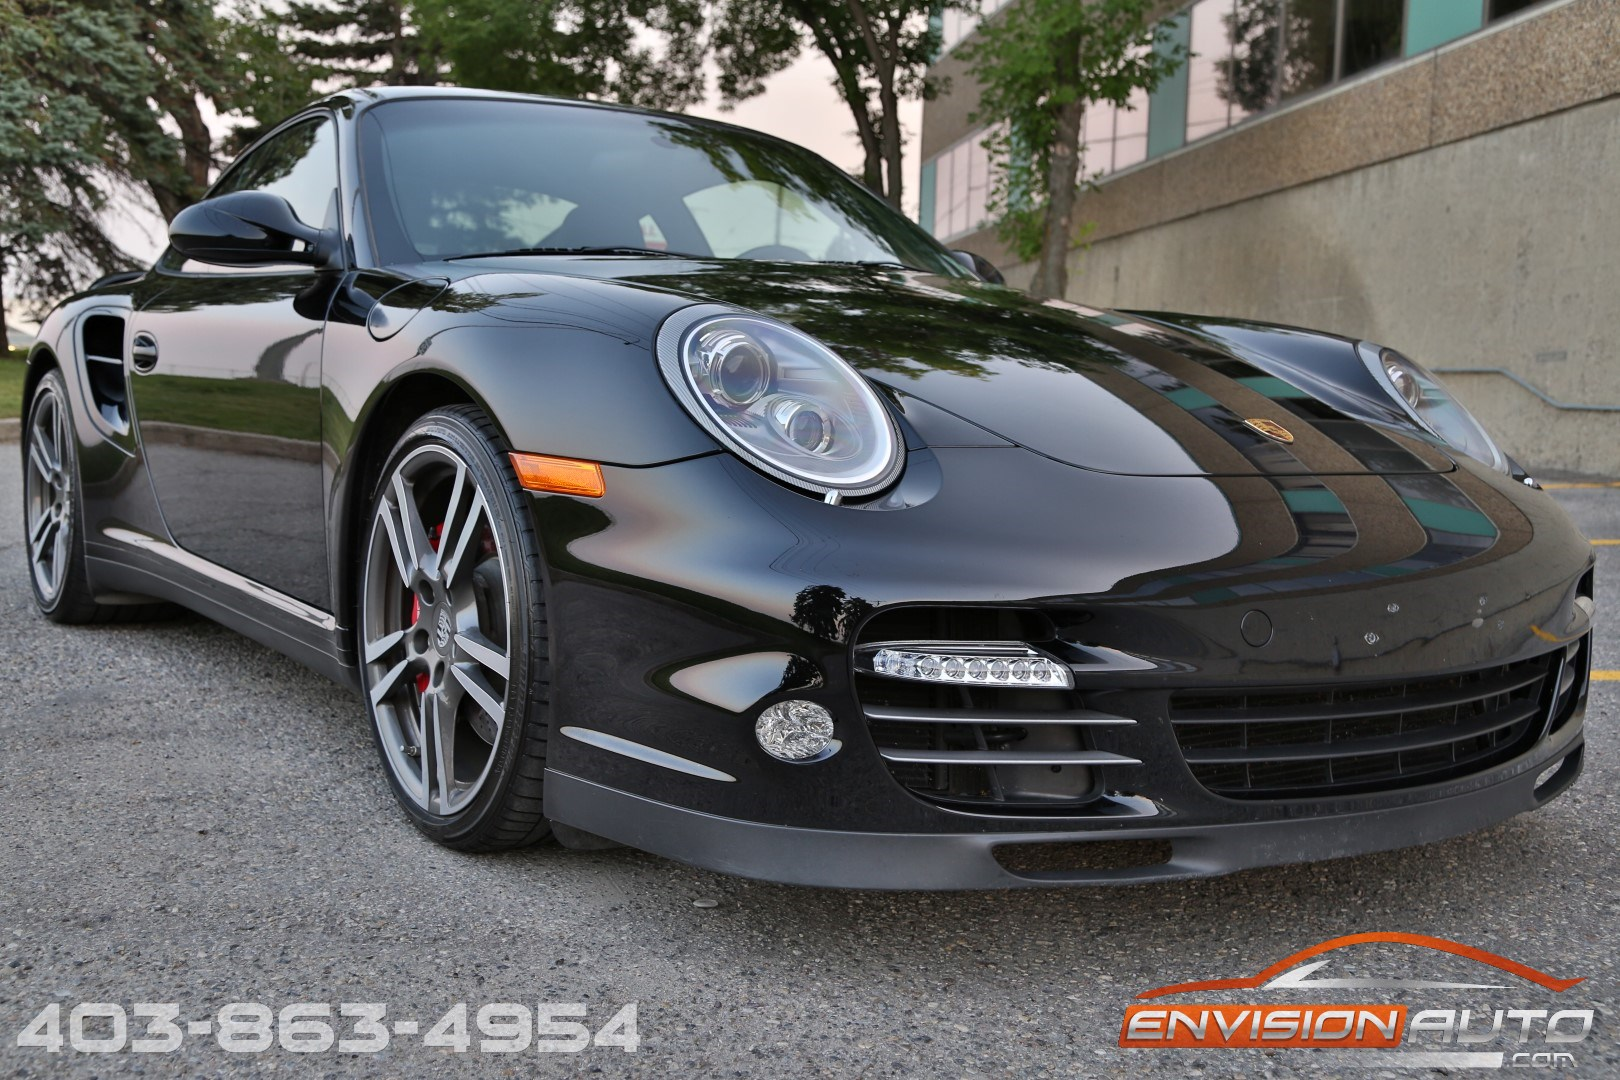 2011 porsche 911 turbo awd pdk only 34kms envision auto. Black Bedroom Furniture Sets. Home Design Ideas